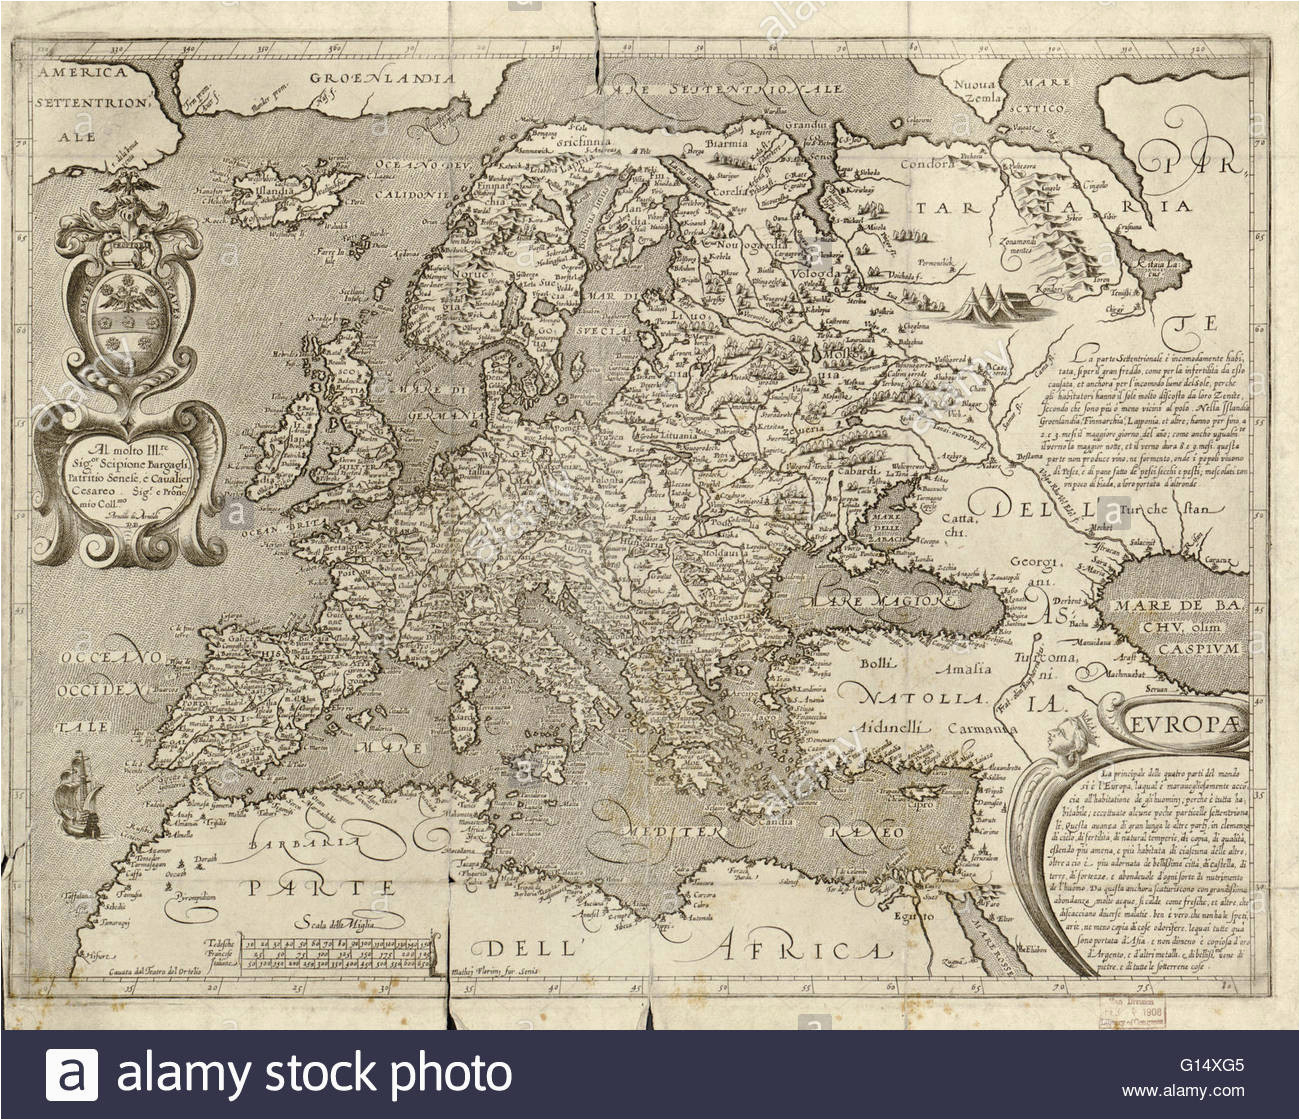 historical map europe stock photos historical map europe